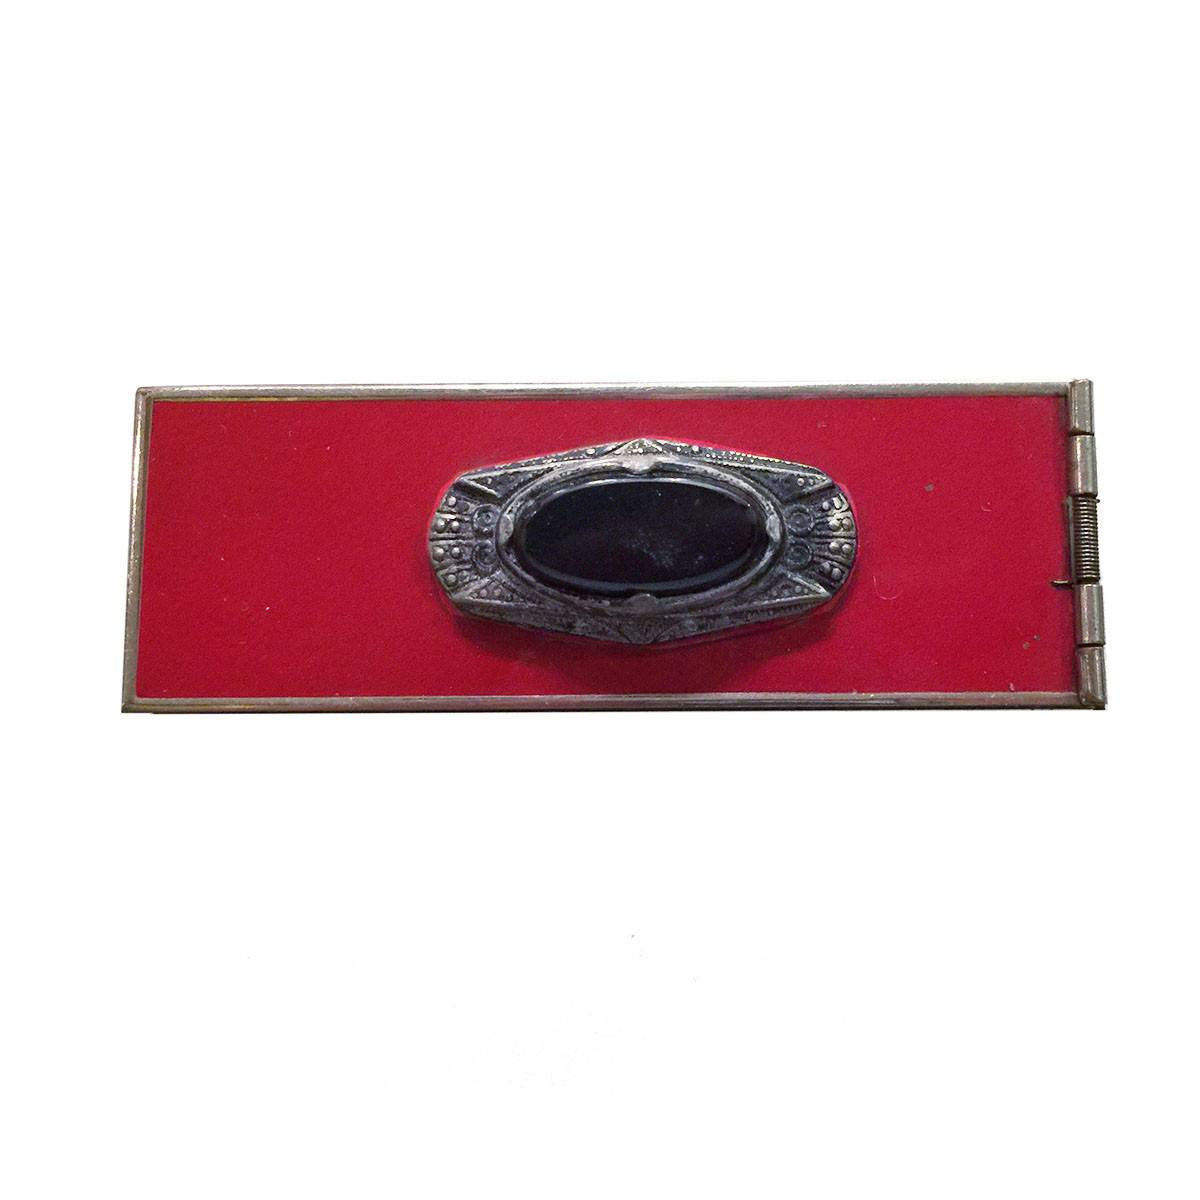 Art Deco Changette Brooch, Onyx & Red Enamel, Hidden Money Compartment